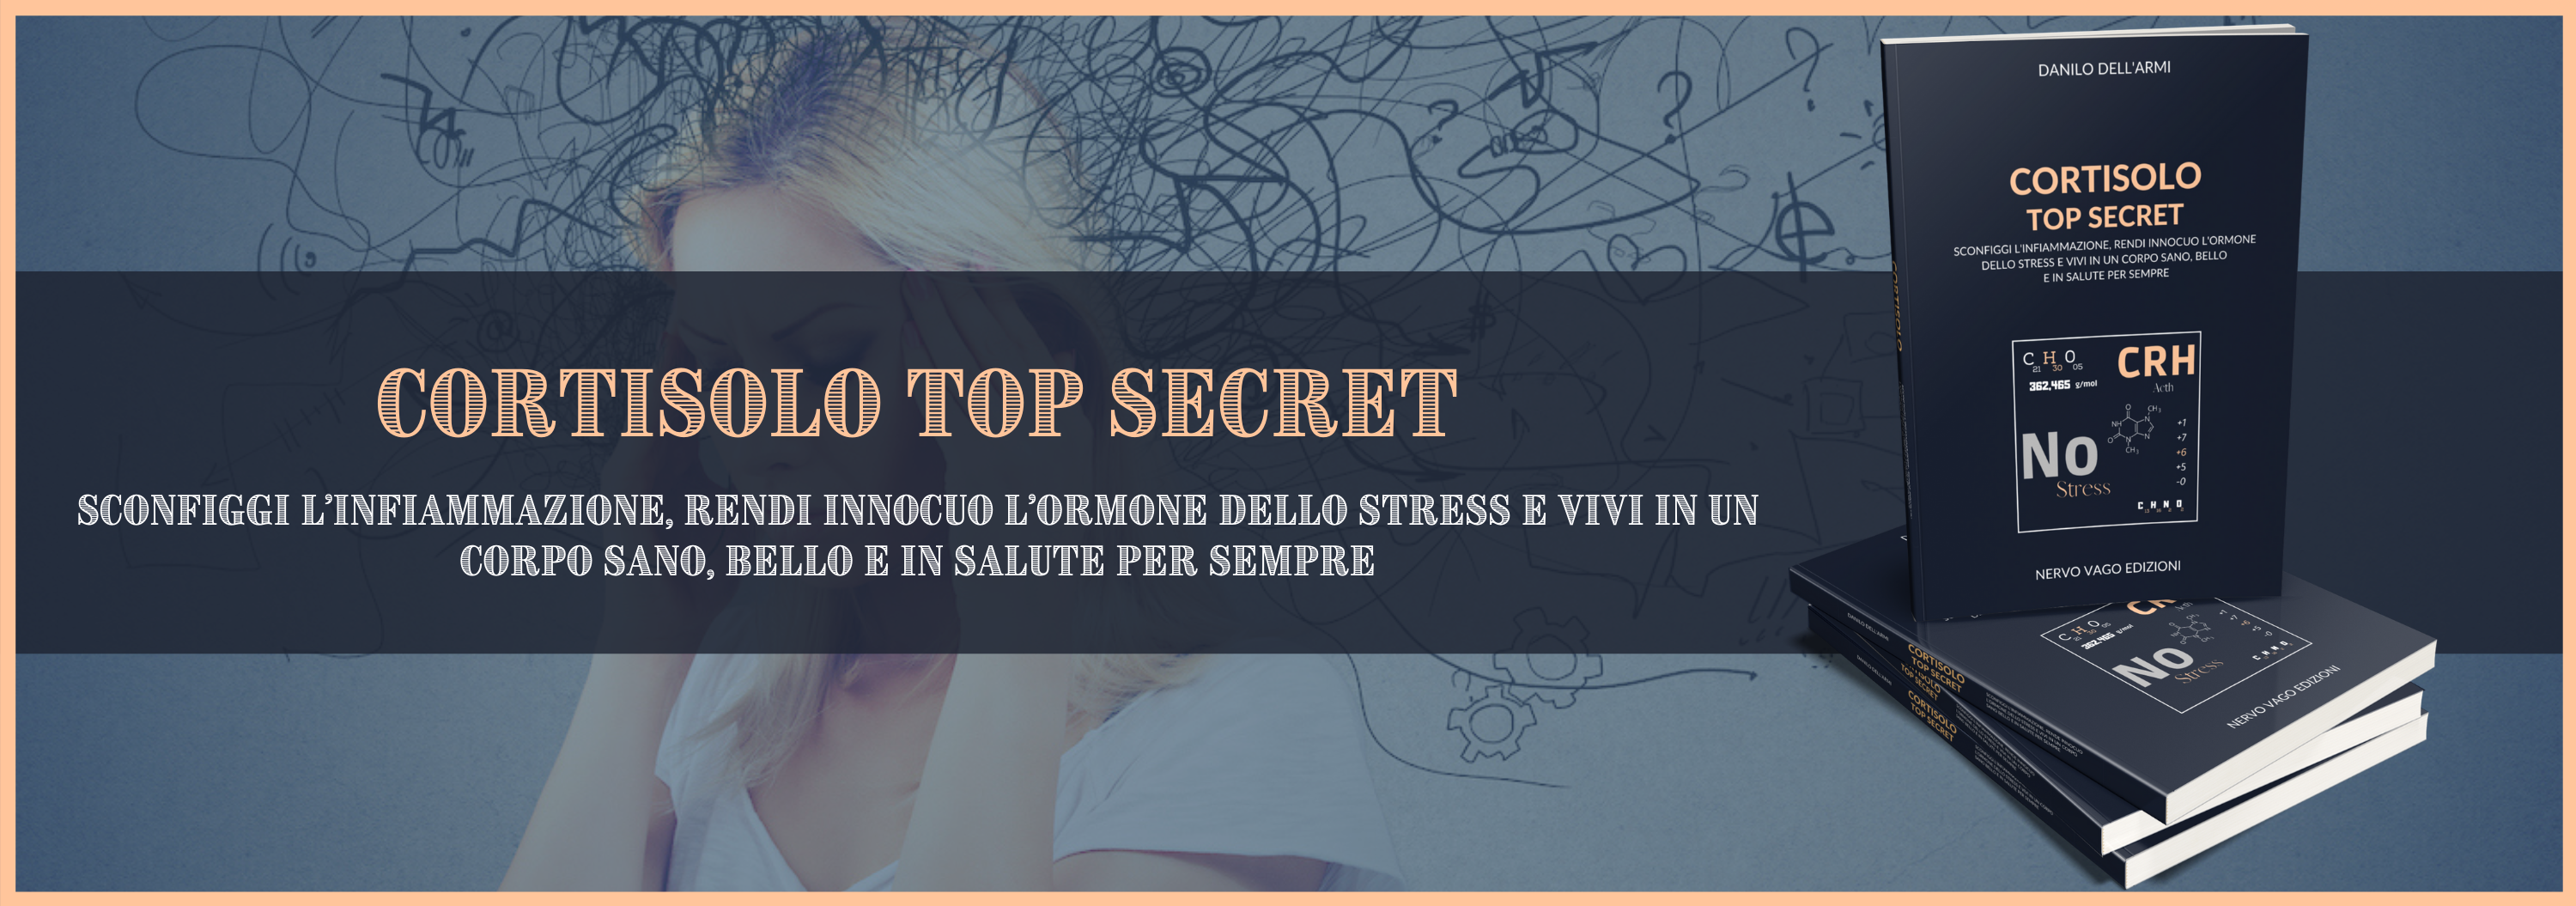 Cortisolo Top Secret - il libro italiano sull'ormone dello stress